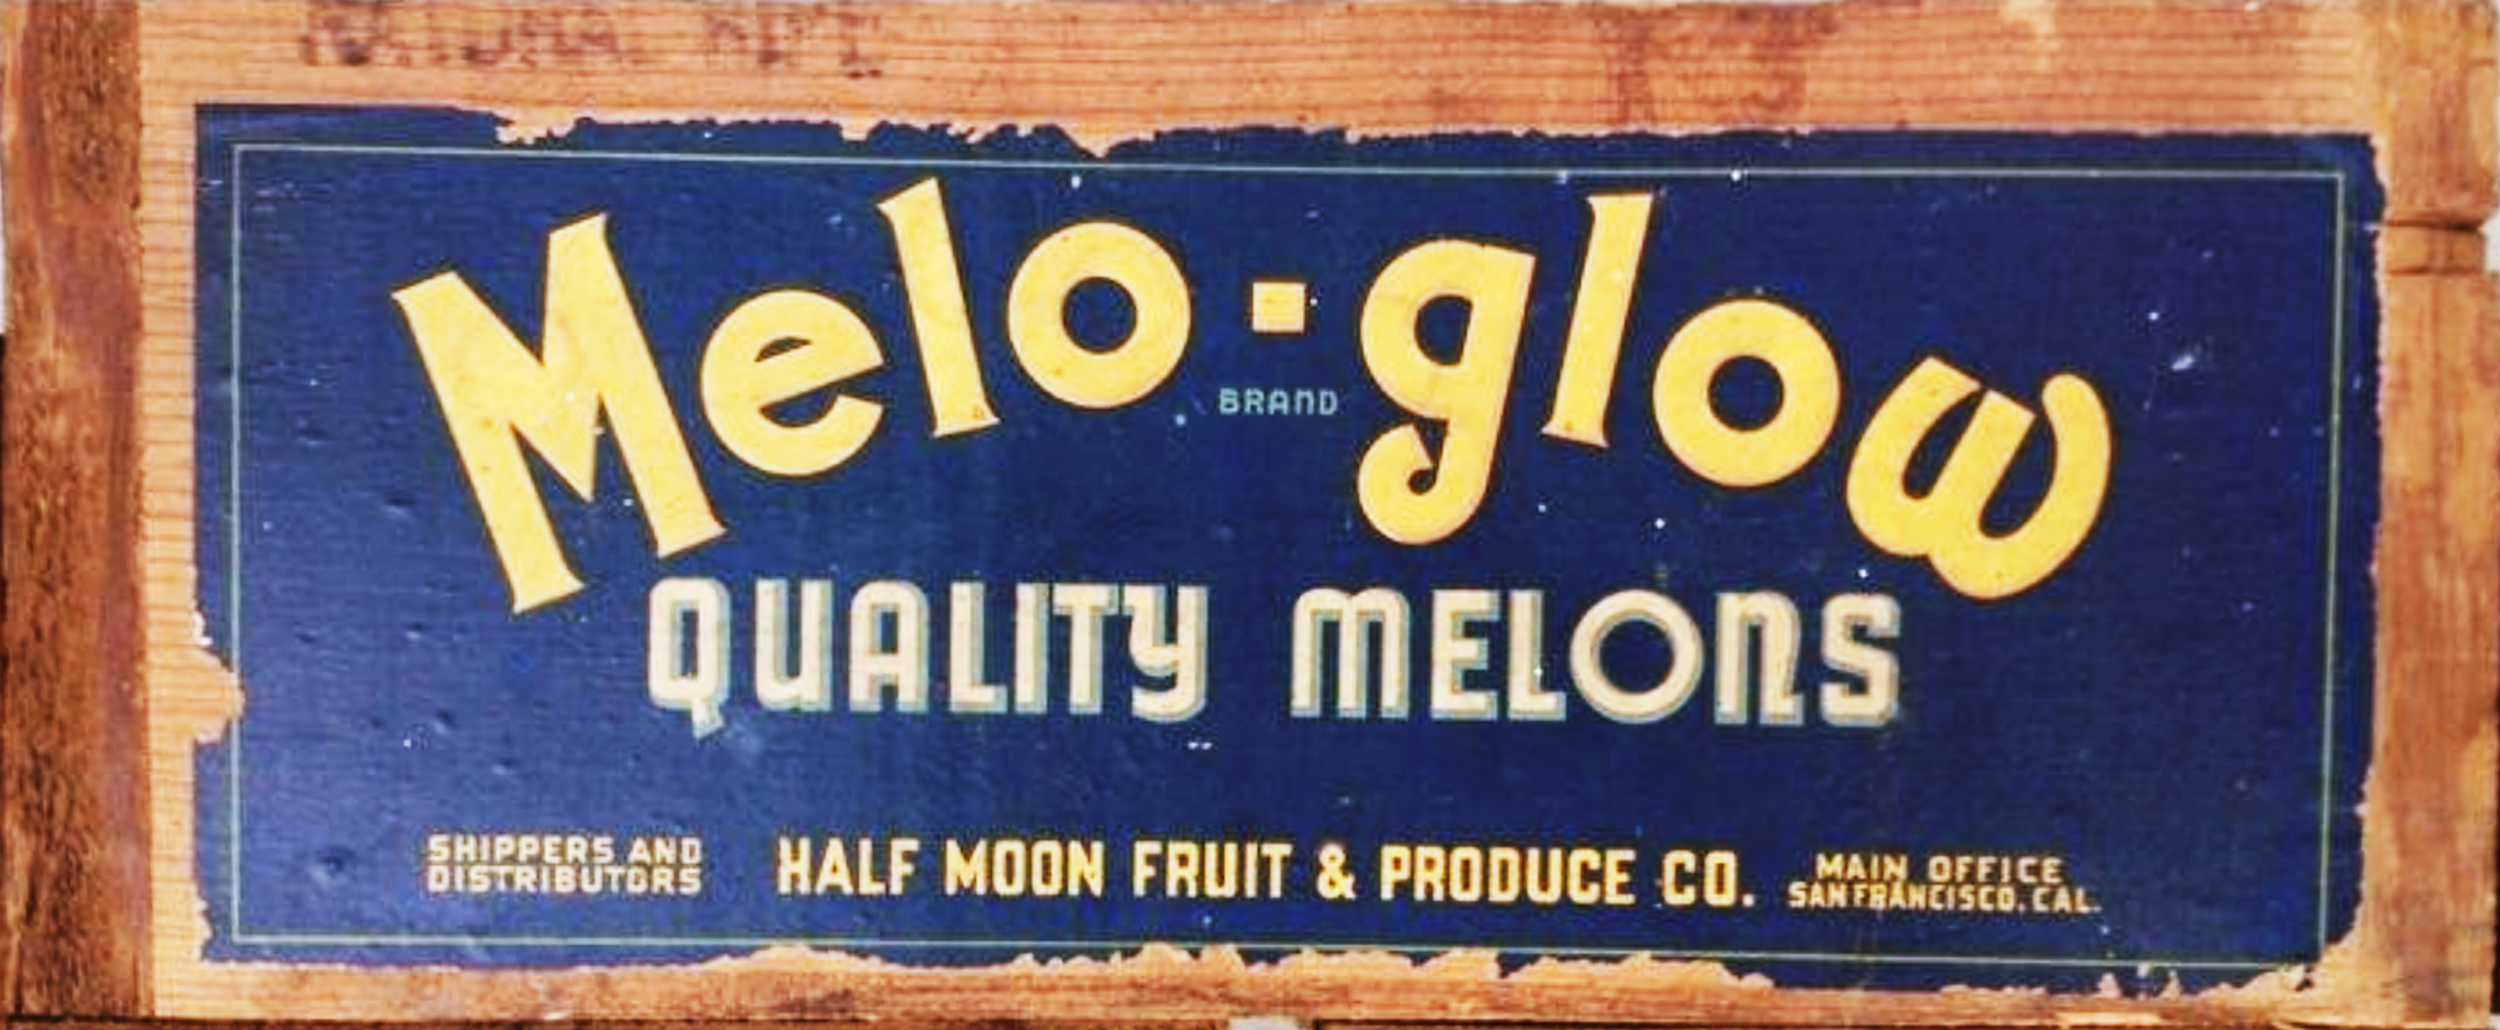 label  melo-glow melons.png